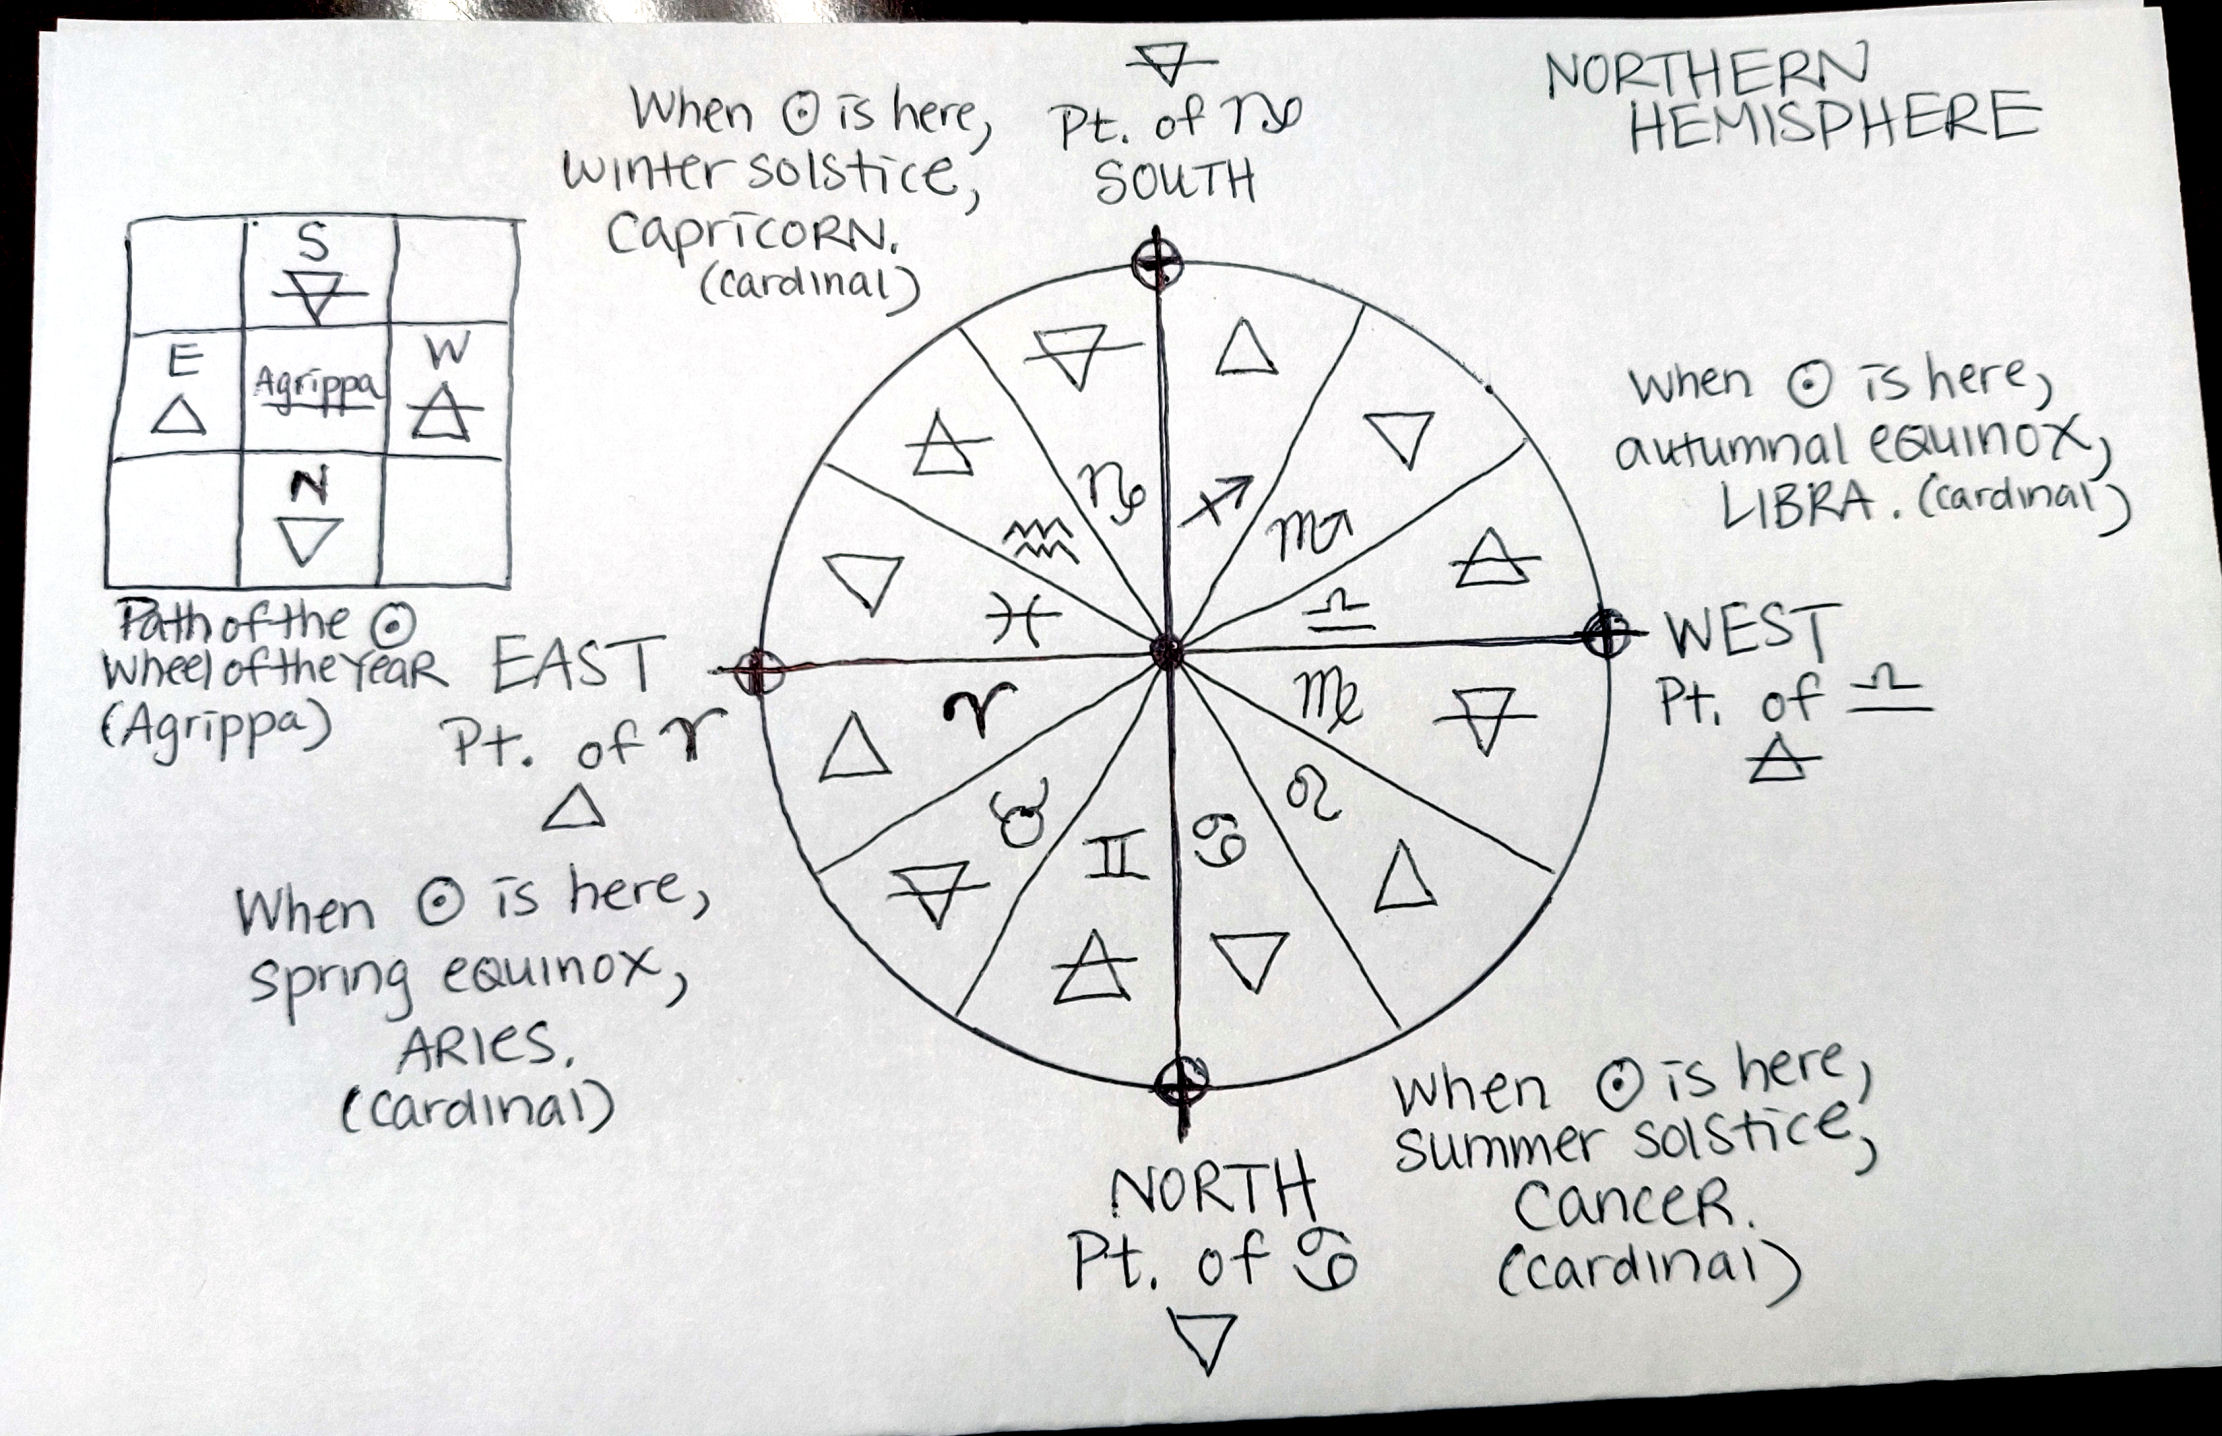 East west astrology compatibility chart